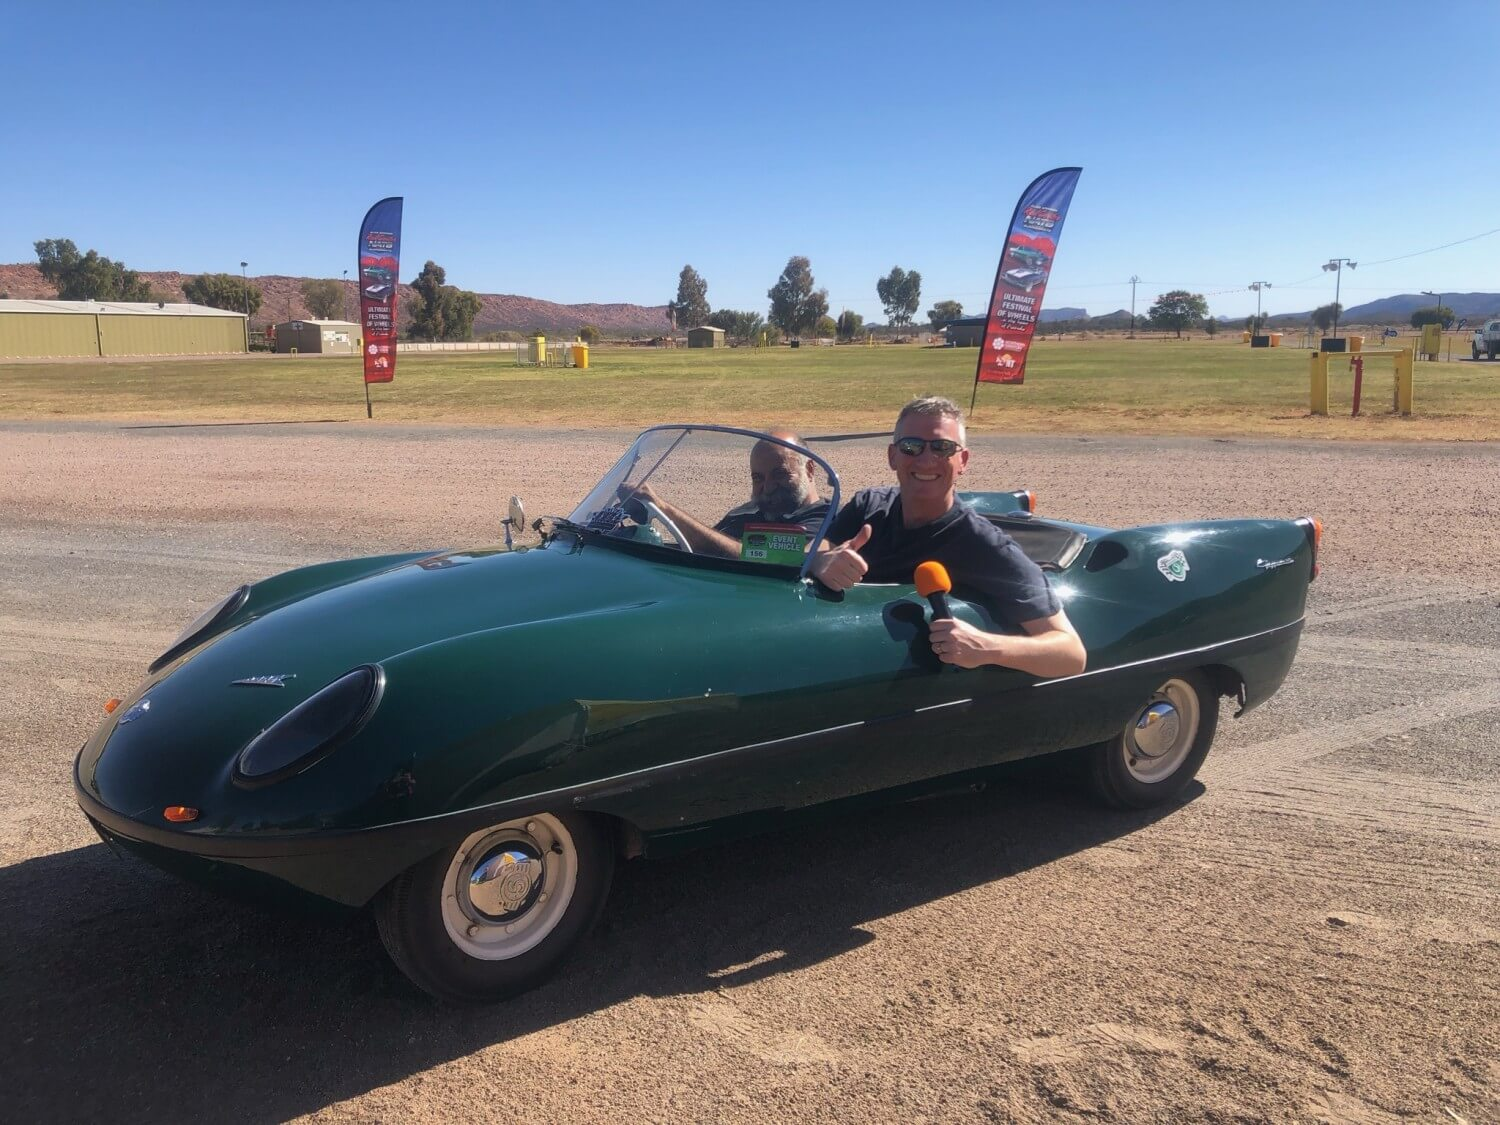 Presenting at the 2019 Red Centre Nats in a Go Go Mobile!